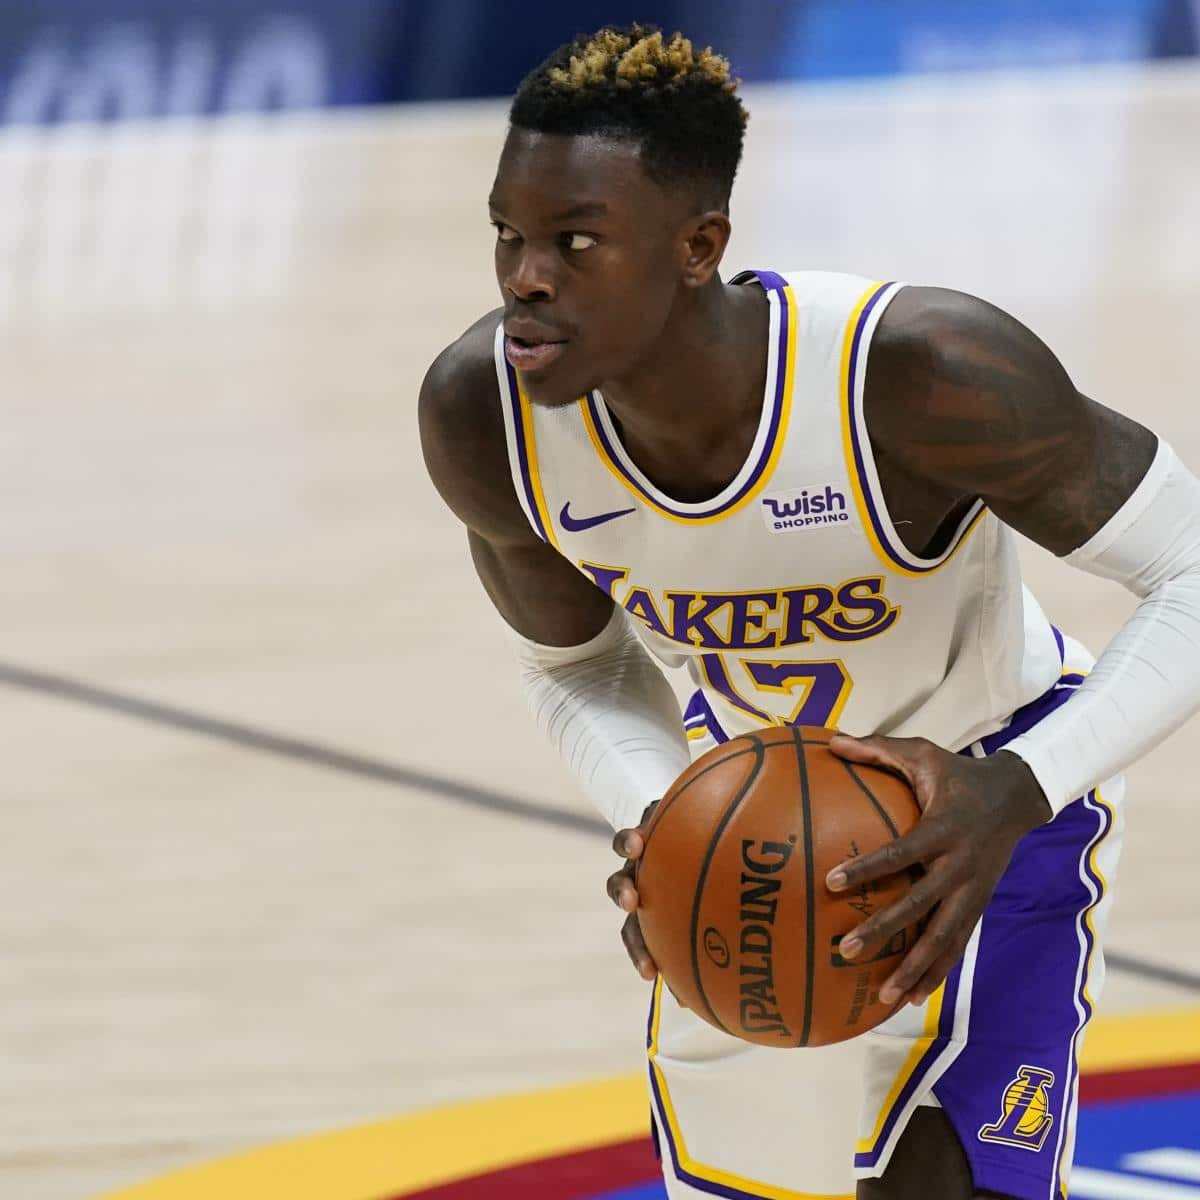 represent-lakers-dennis-schroder-out-at-least-a-week-attributable-to-covid-contact-tracing.jpg